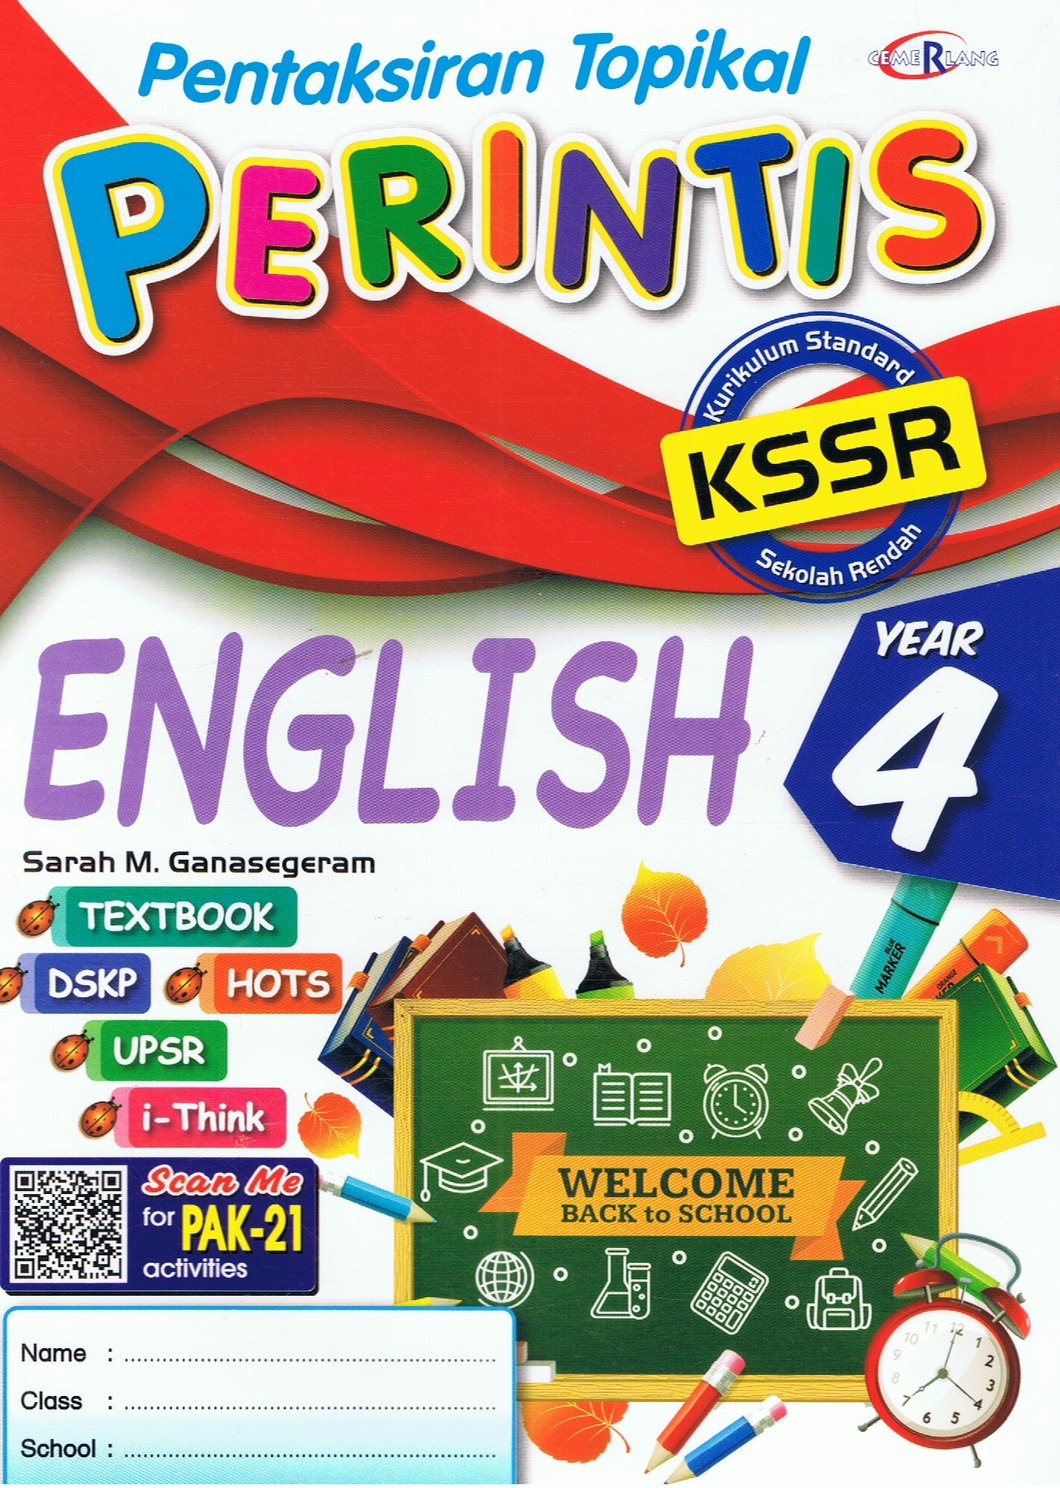 Pentaksiran Topikal Perintis: English Year 4